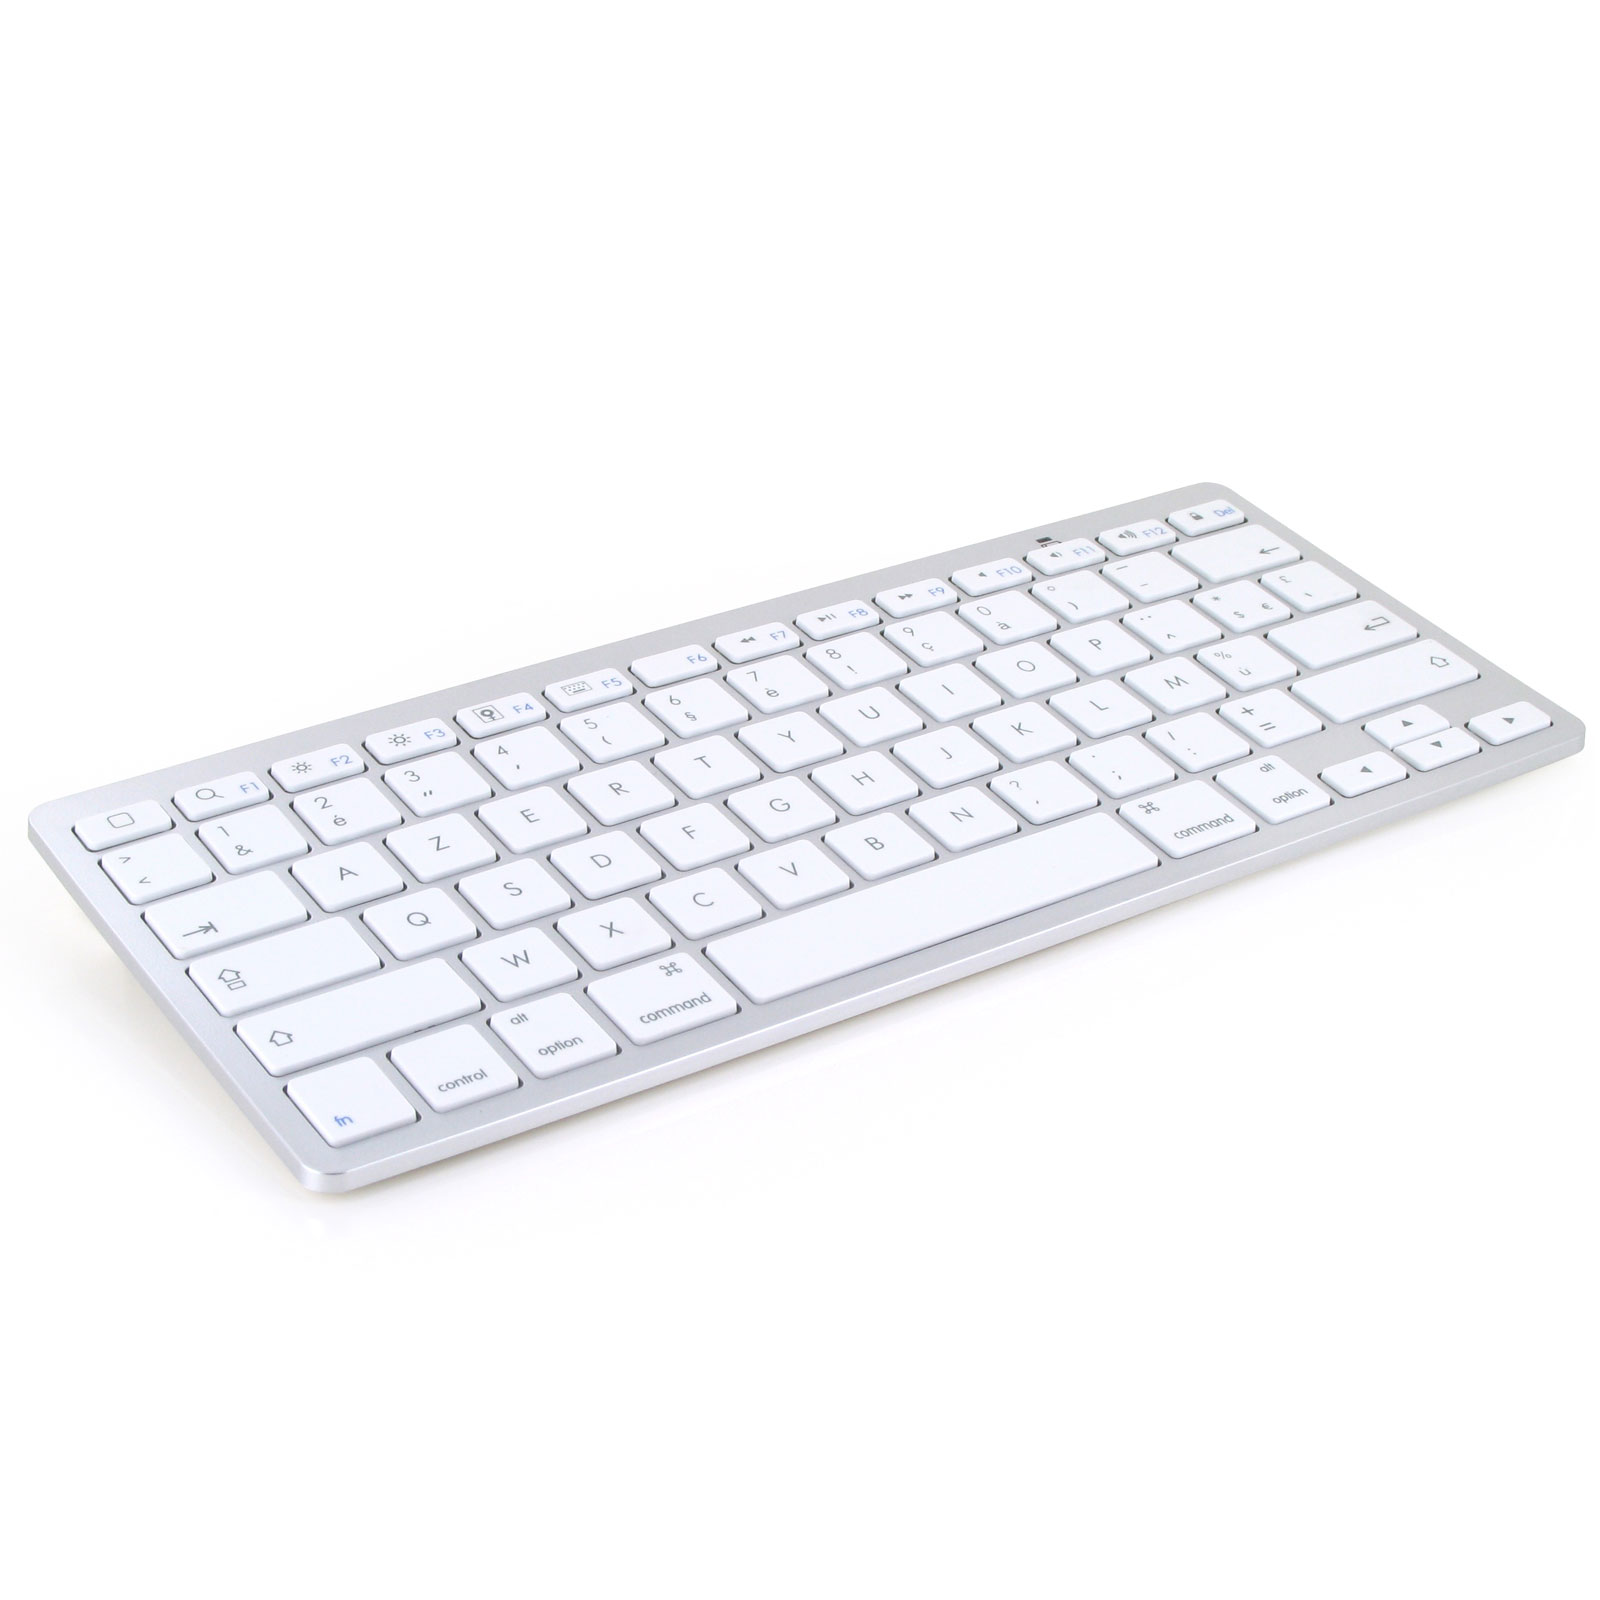 Mobility Lab Mini Wireless Keyboard For Mac